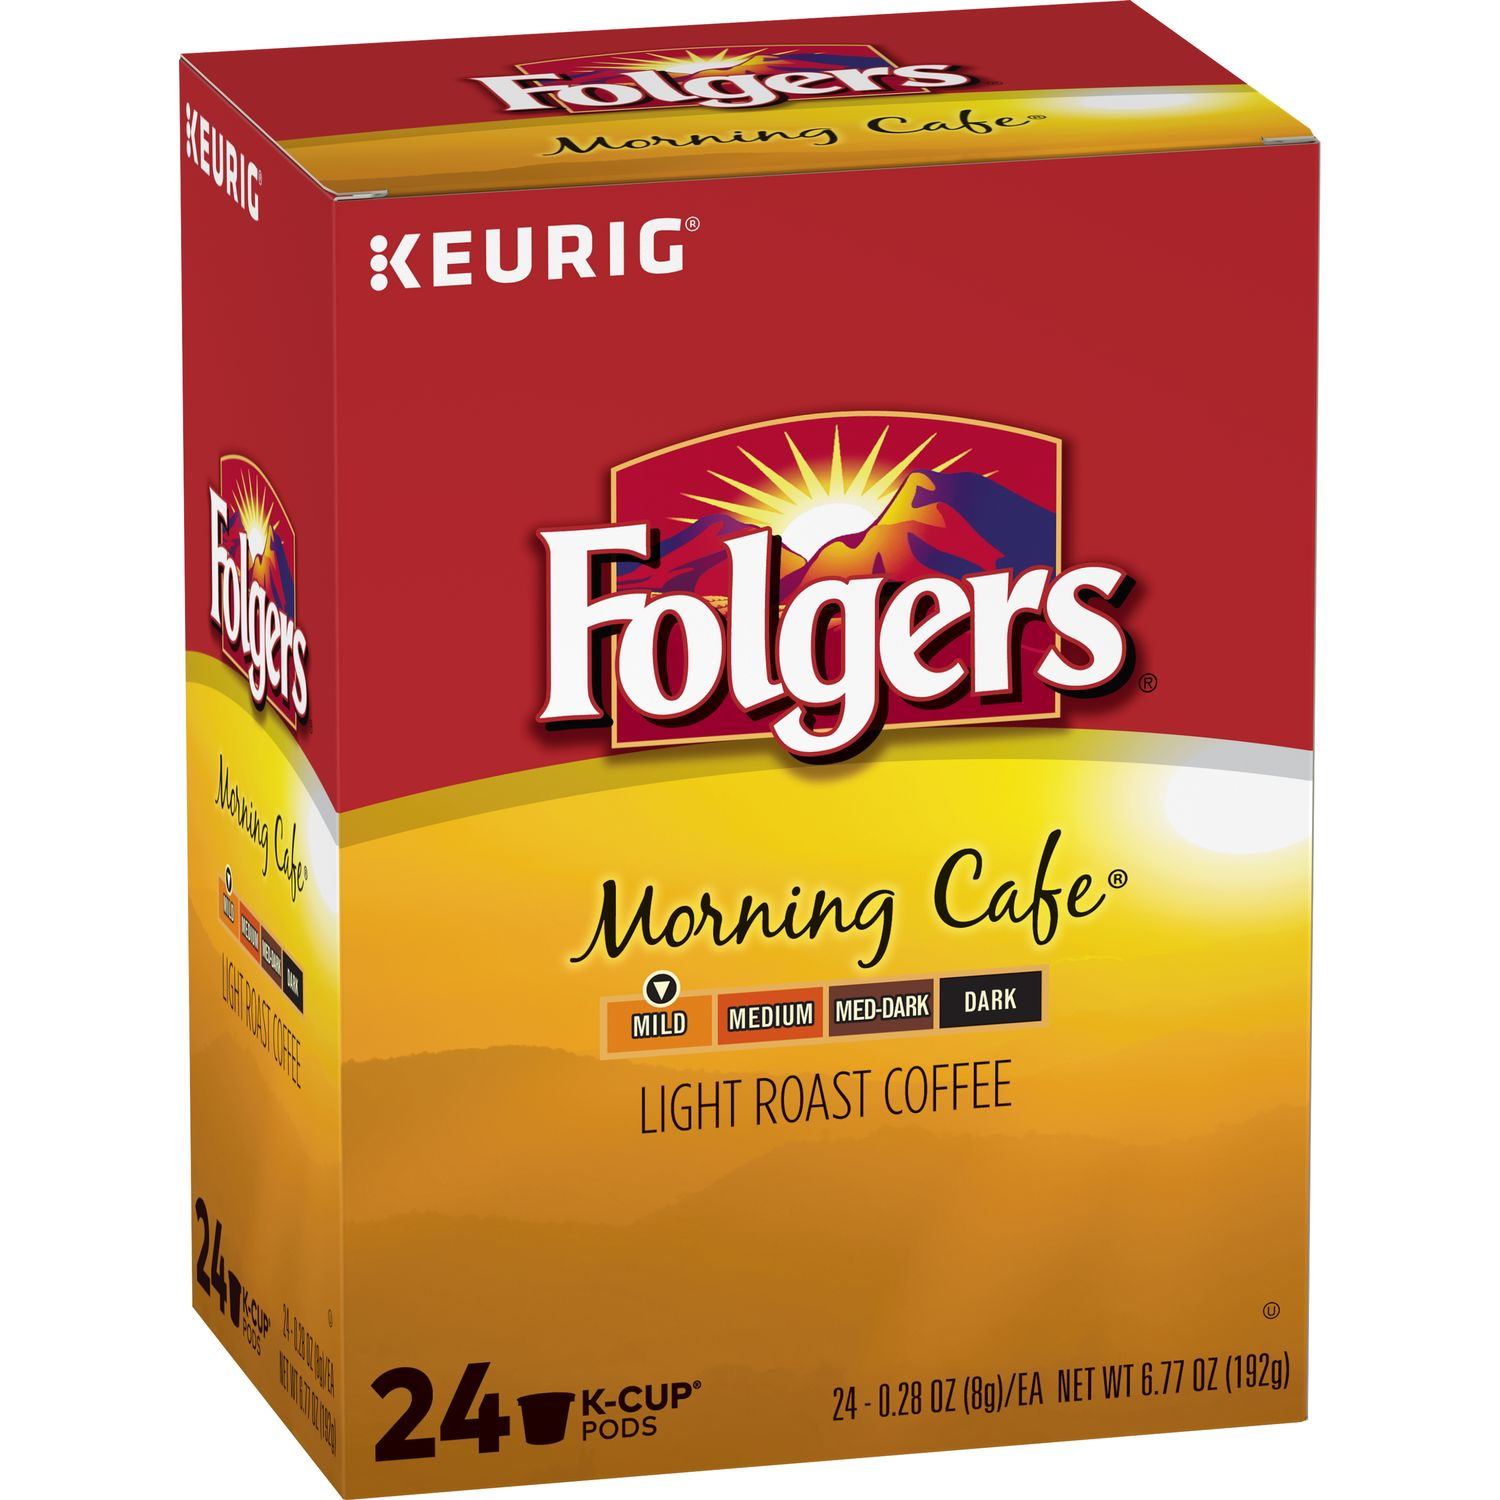 Folgers Morning Cafe, Light Roast Coffee, K-Cup Pods, 24-Count